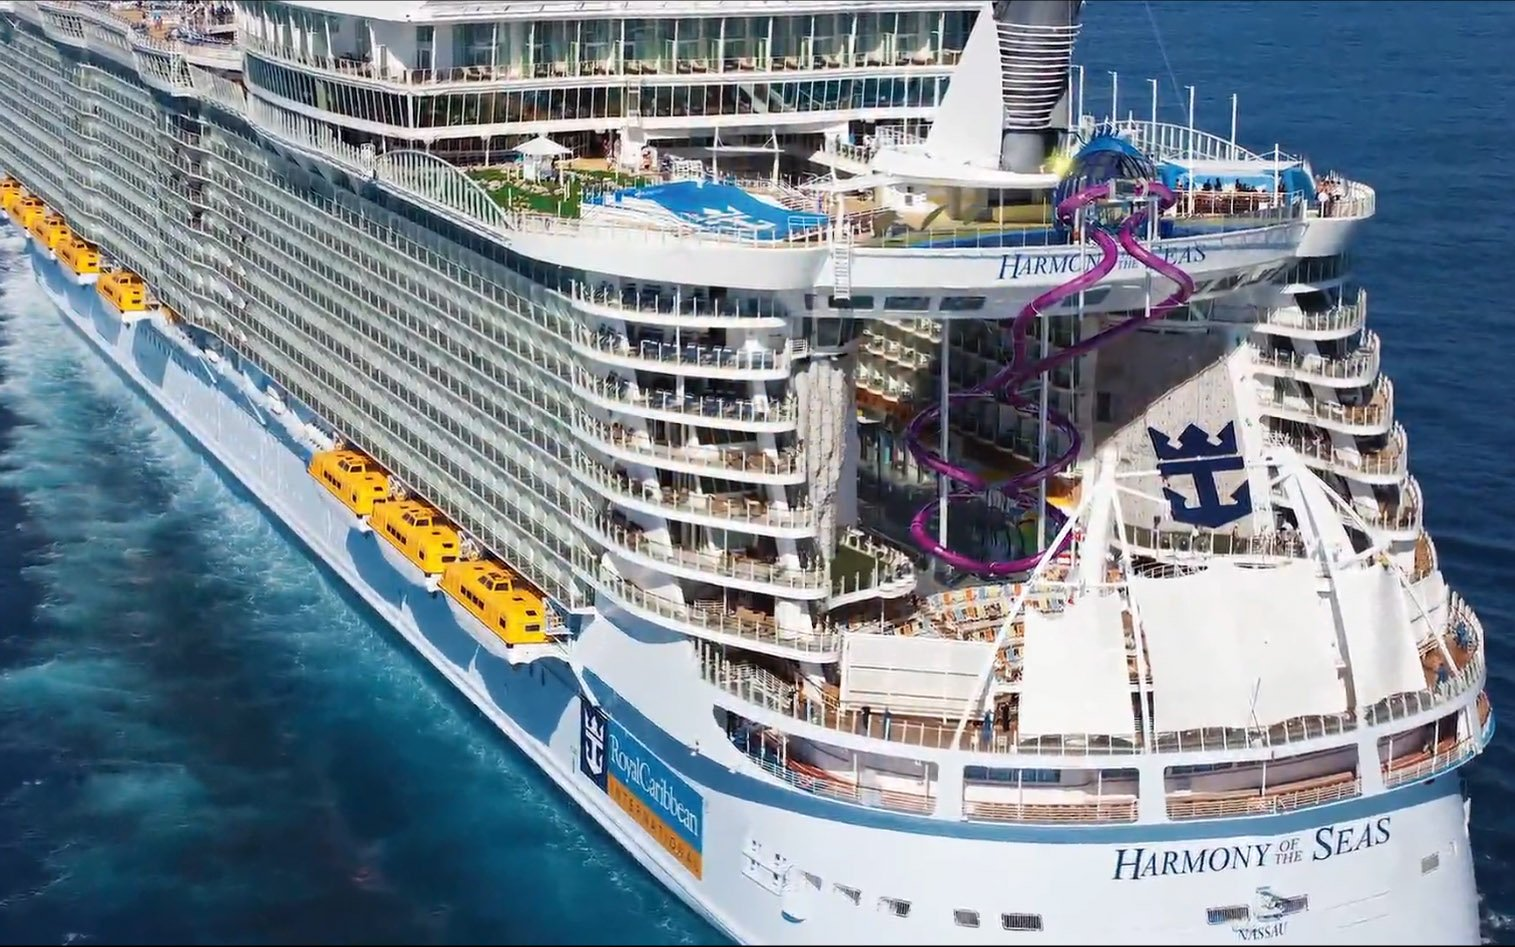 Royal Caribbean Trademarks Oasis Cl Stern Design